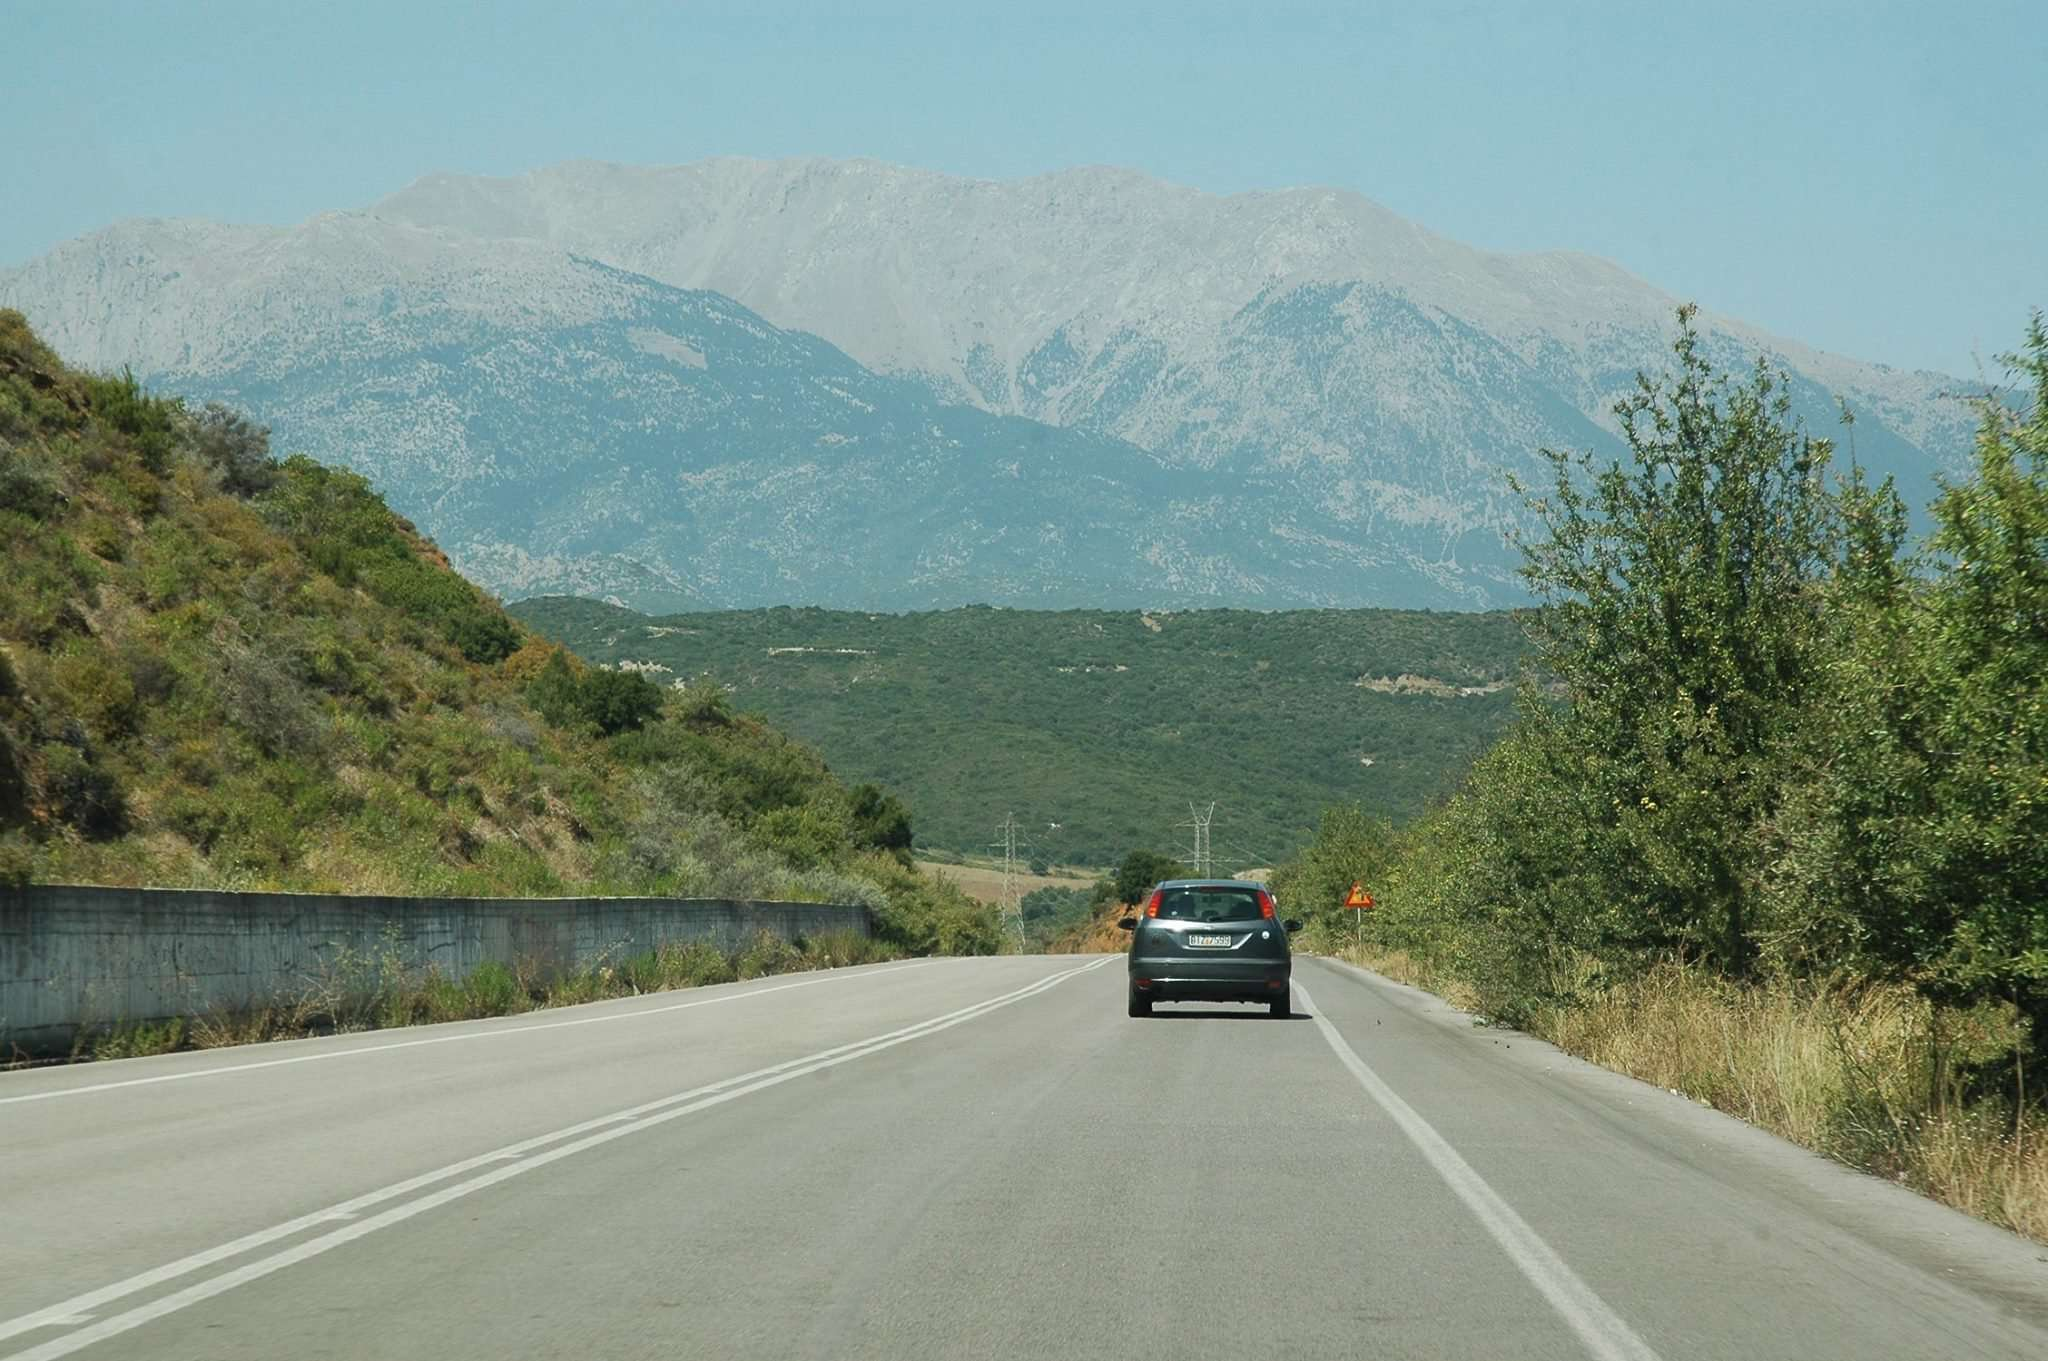 The drive to Delphi